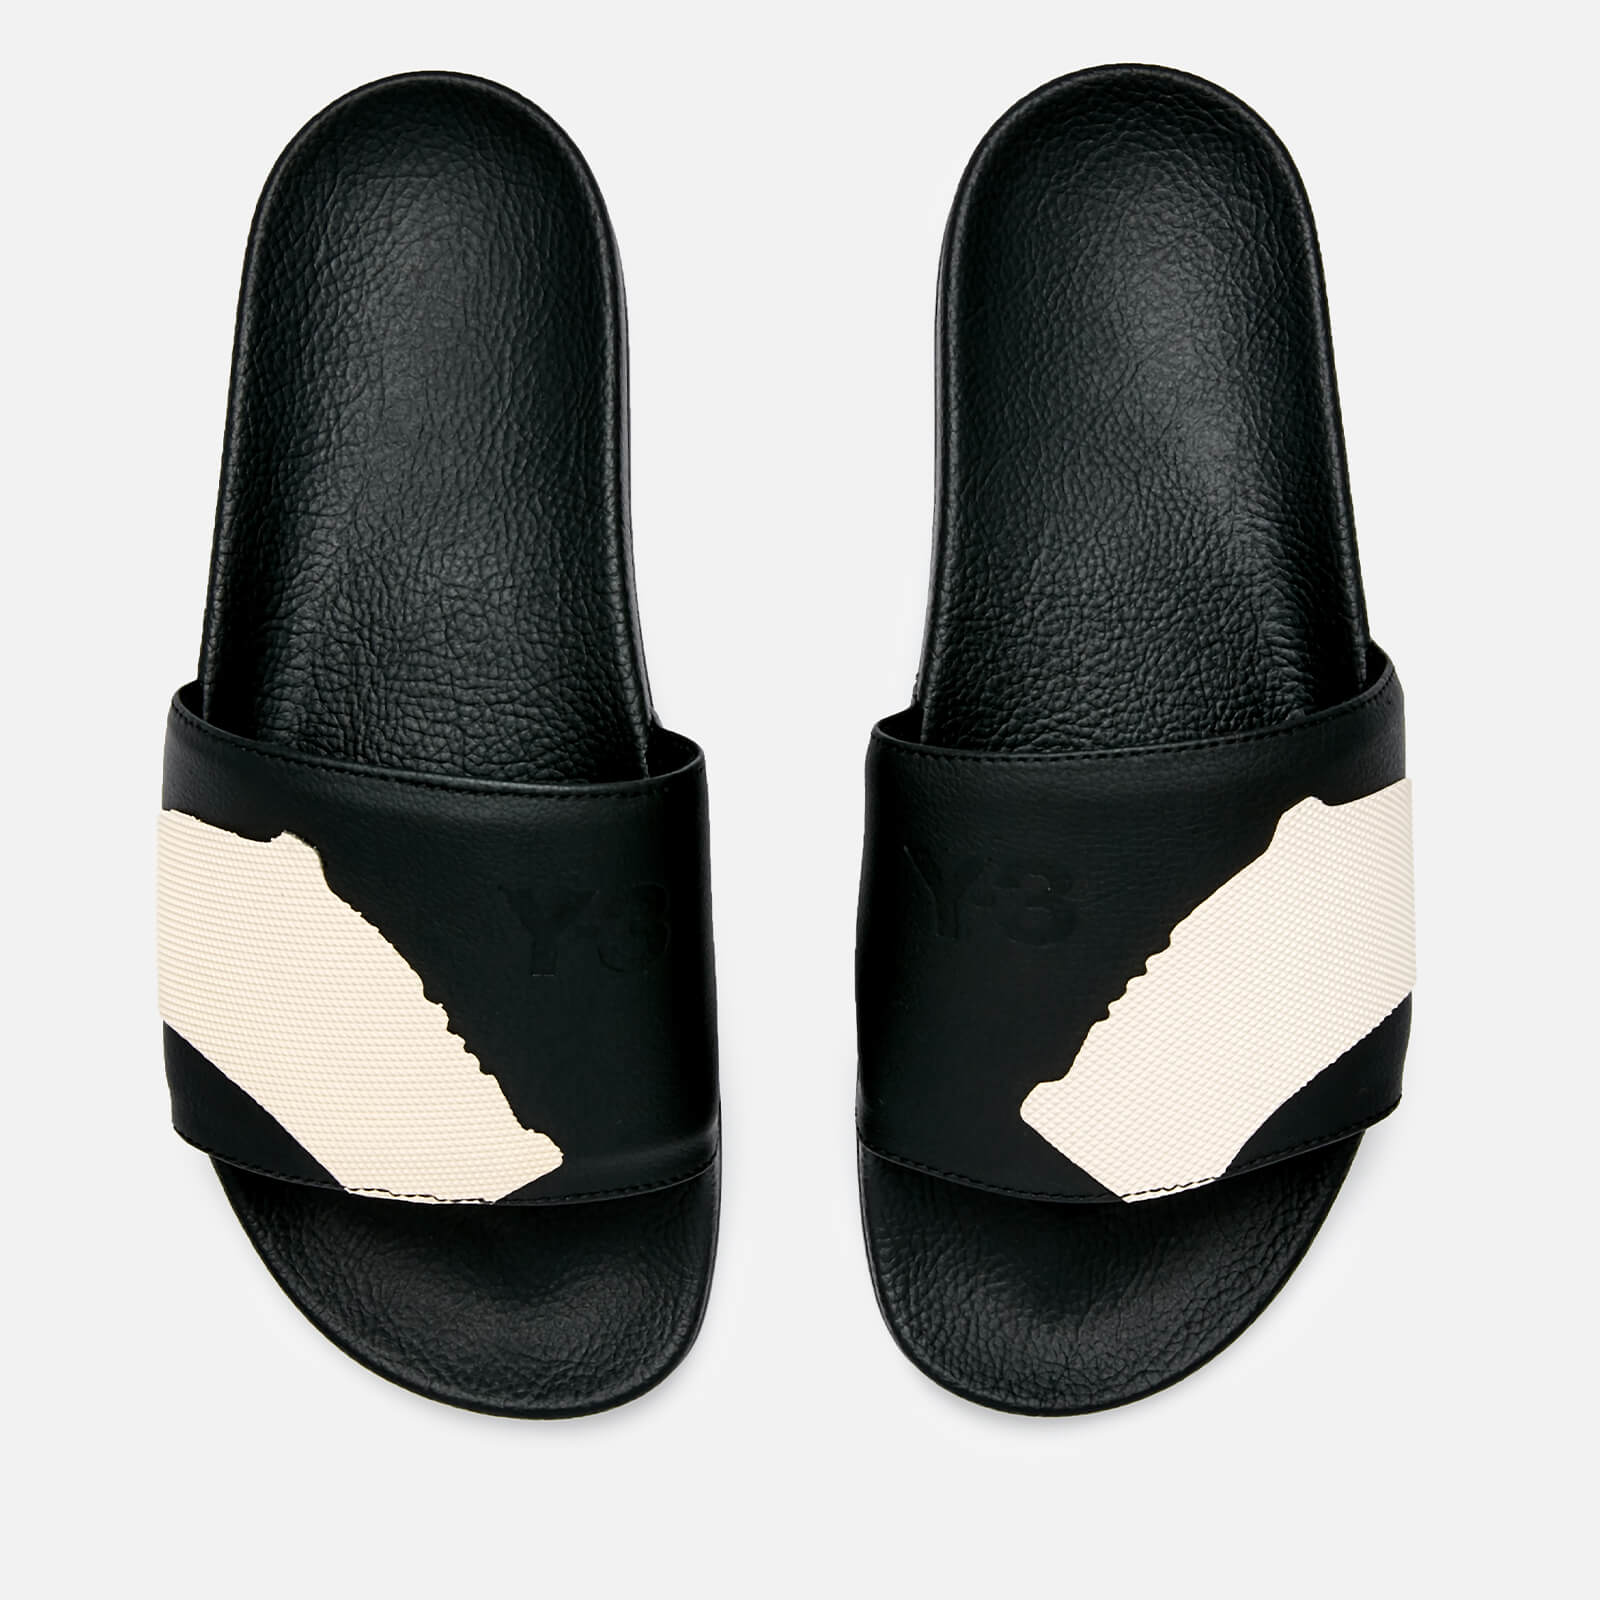 f27116255de7a Y-3 Men s Adilette Slide Sandals - Core Black Core Black - Free UK Delivery  over £50